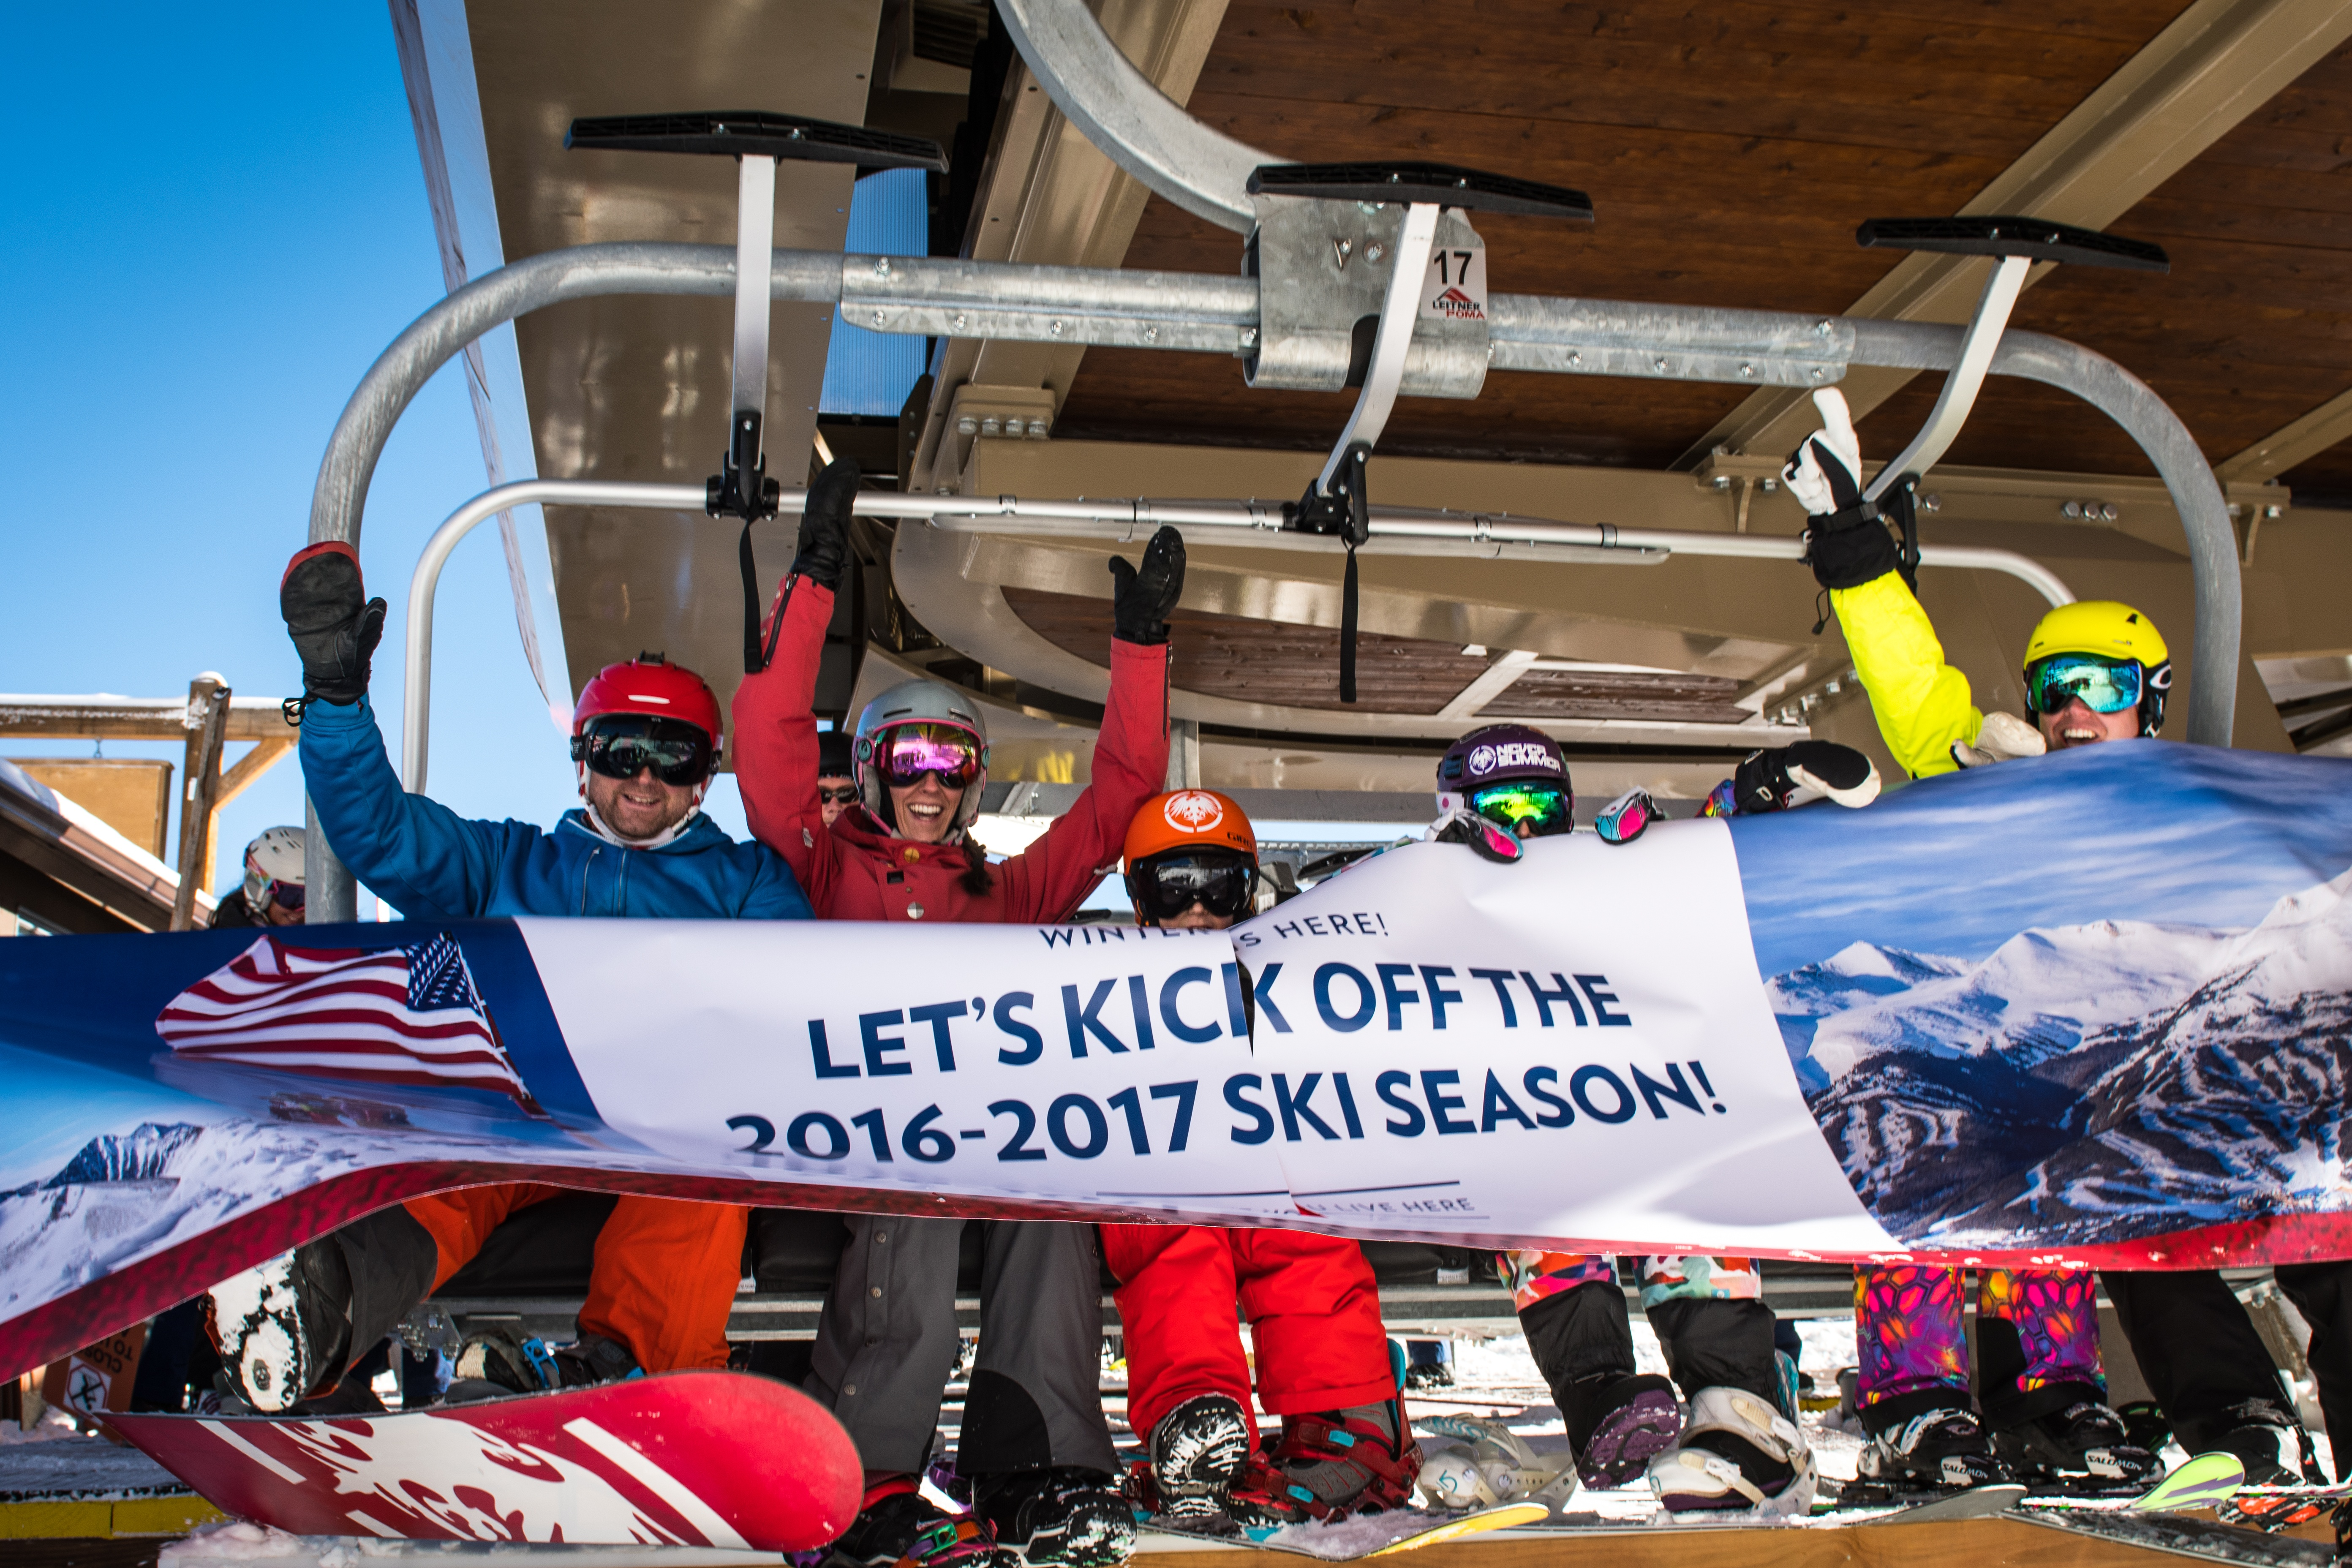 BreckOpeningDay_PHOTO_11.19.16_1.jpg